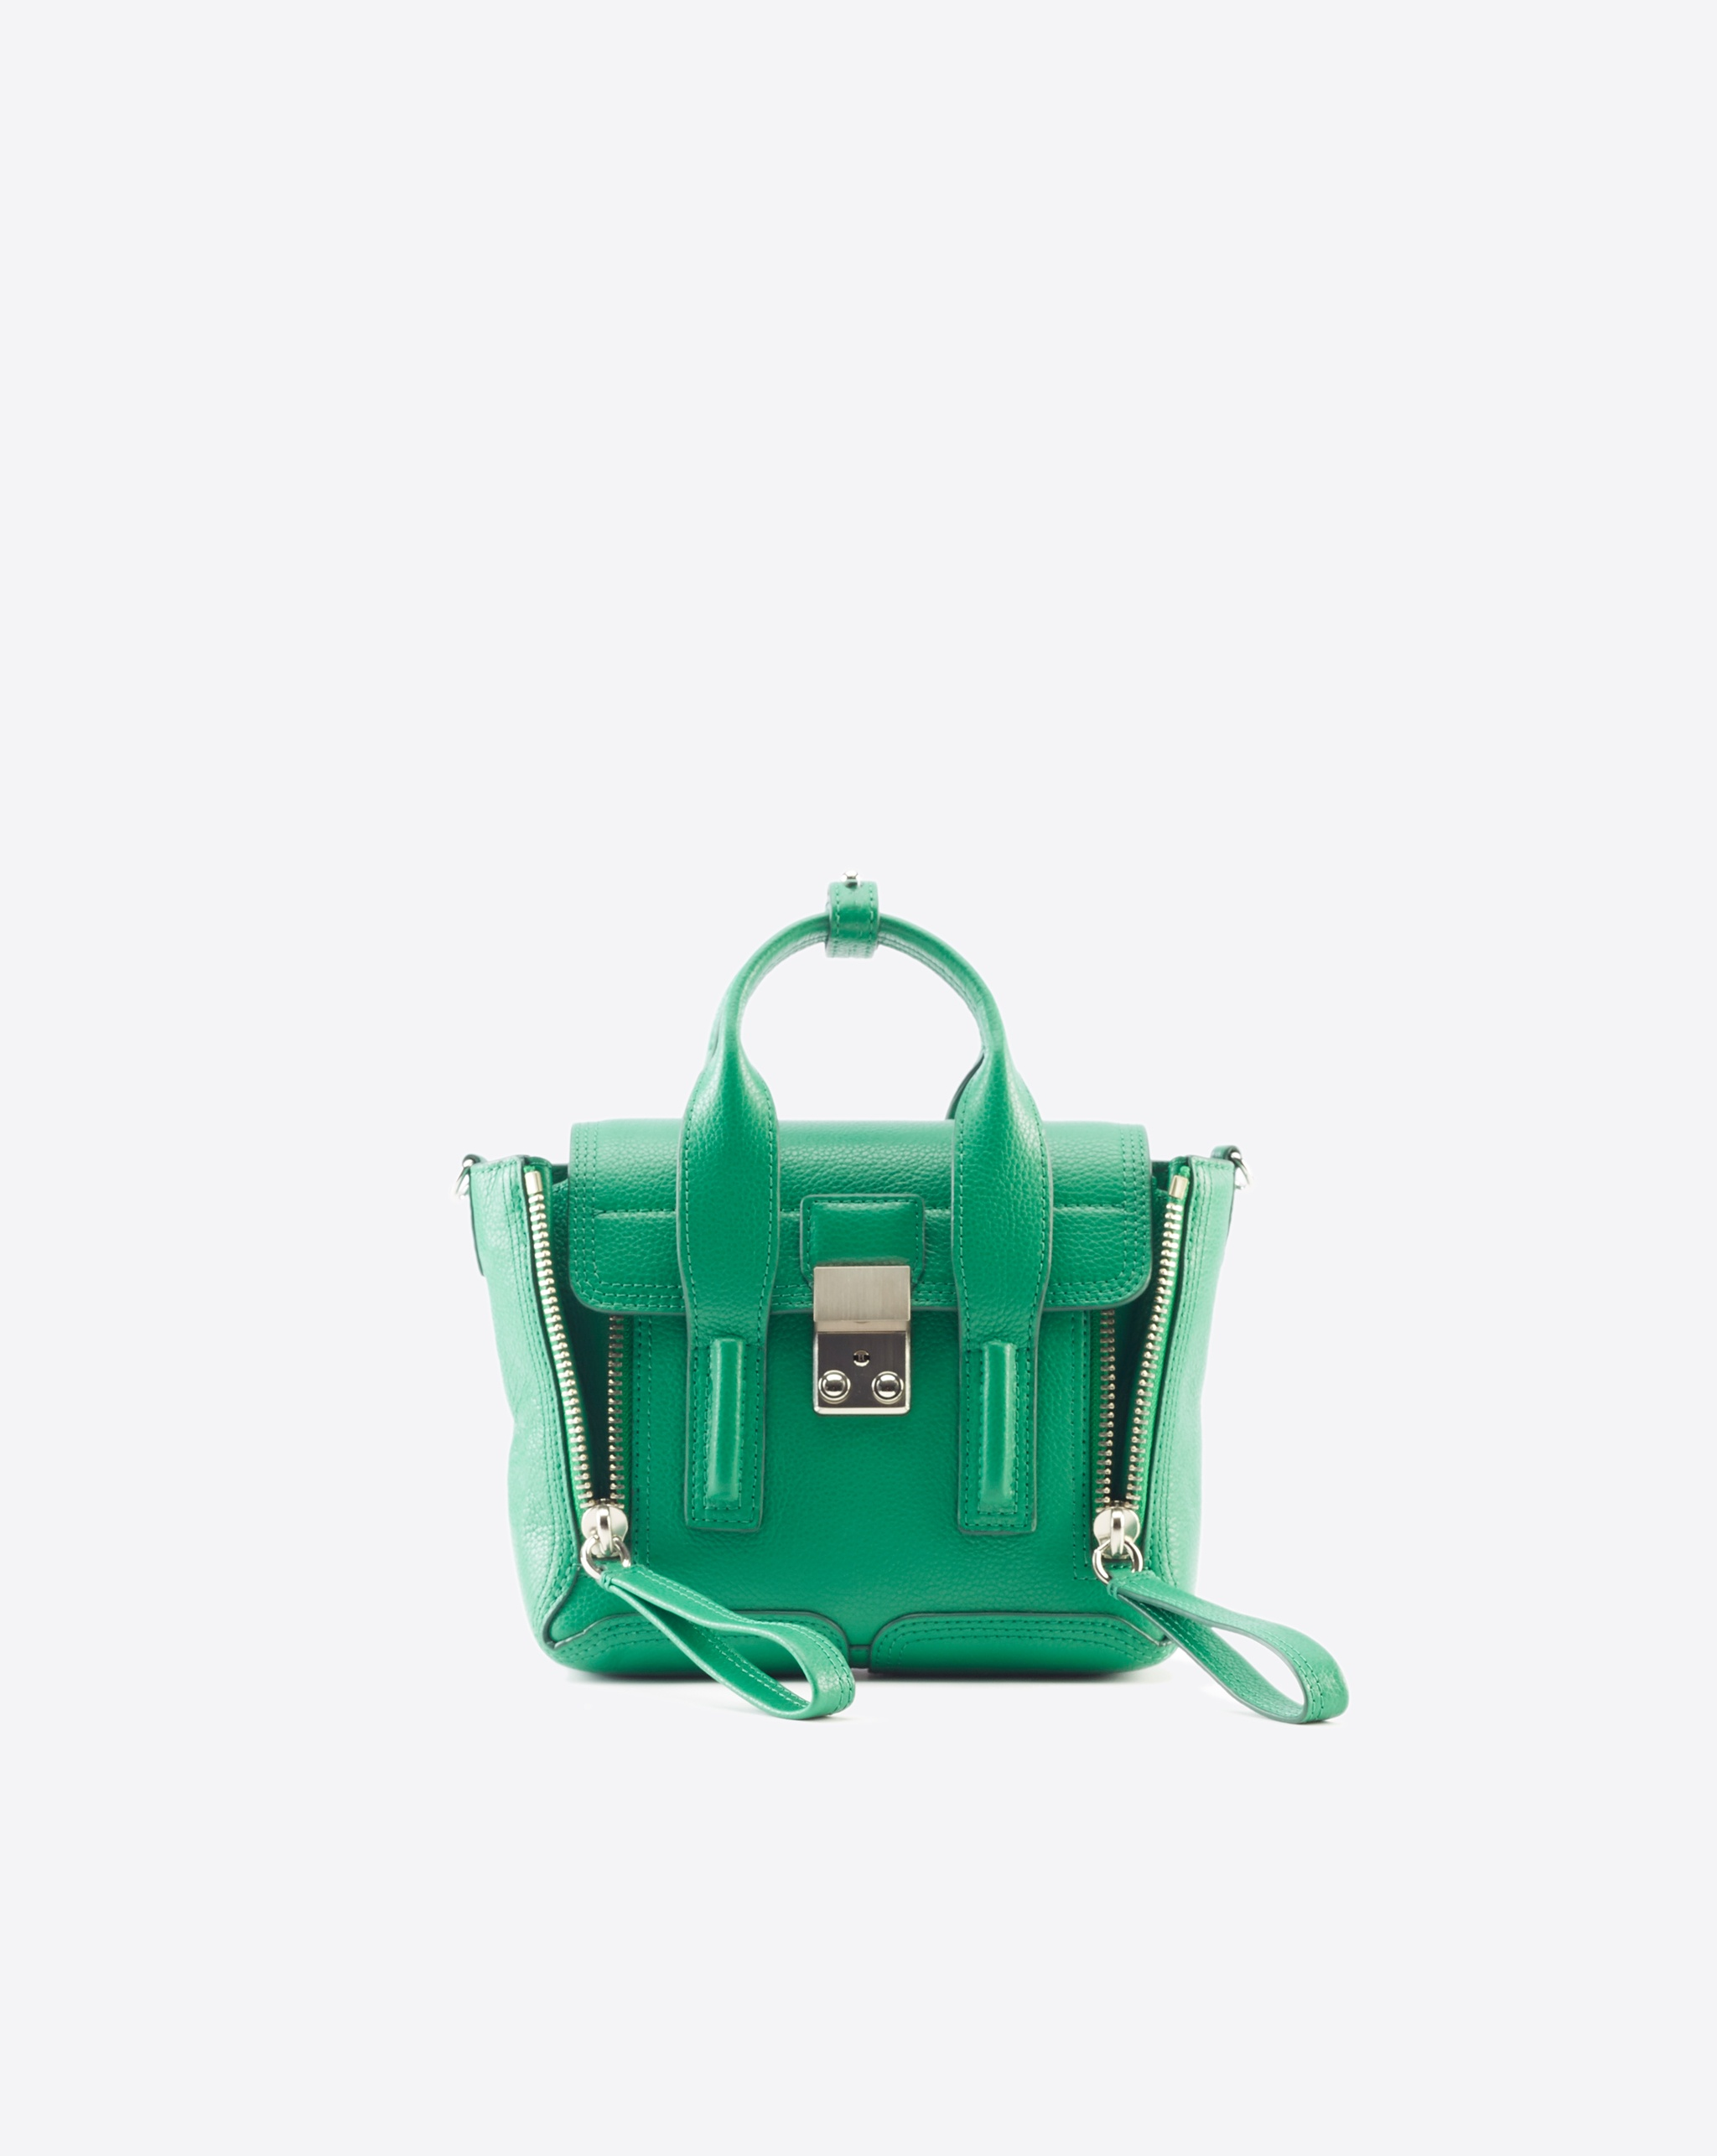 3-1-phillip-lim-pashli-mini-satchel_14682626_25013874_2048